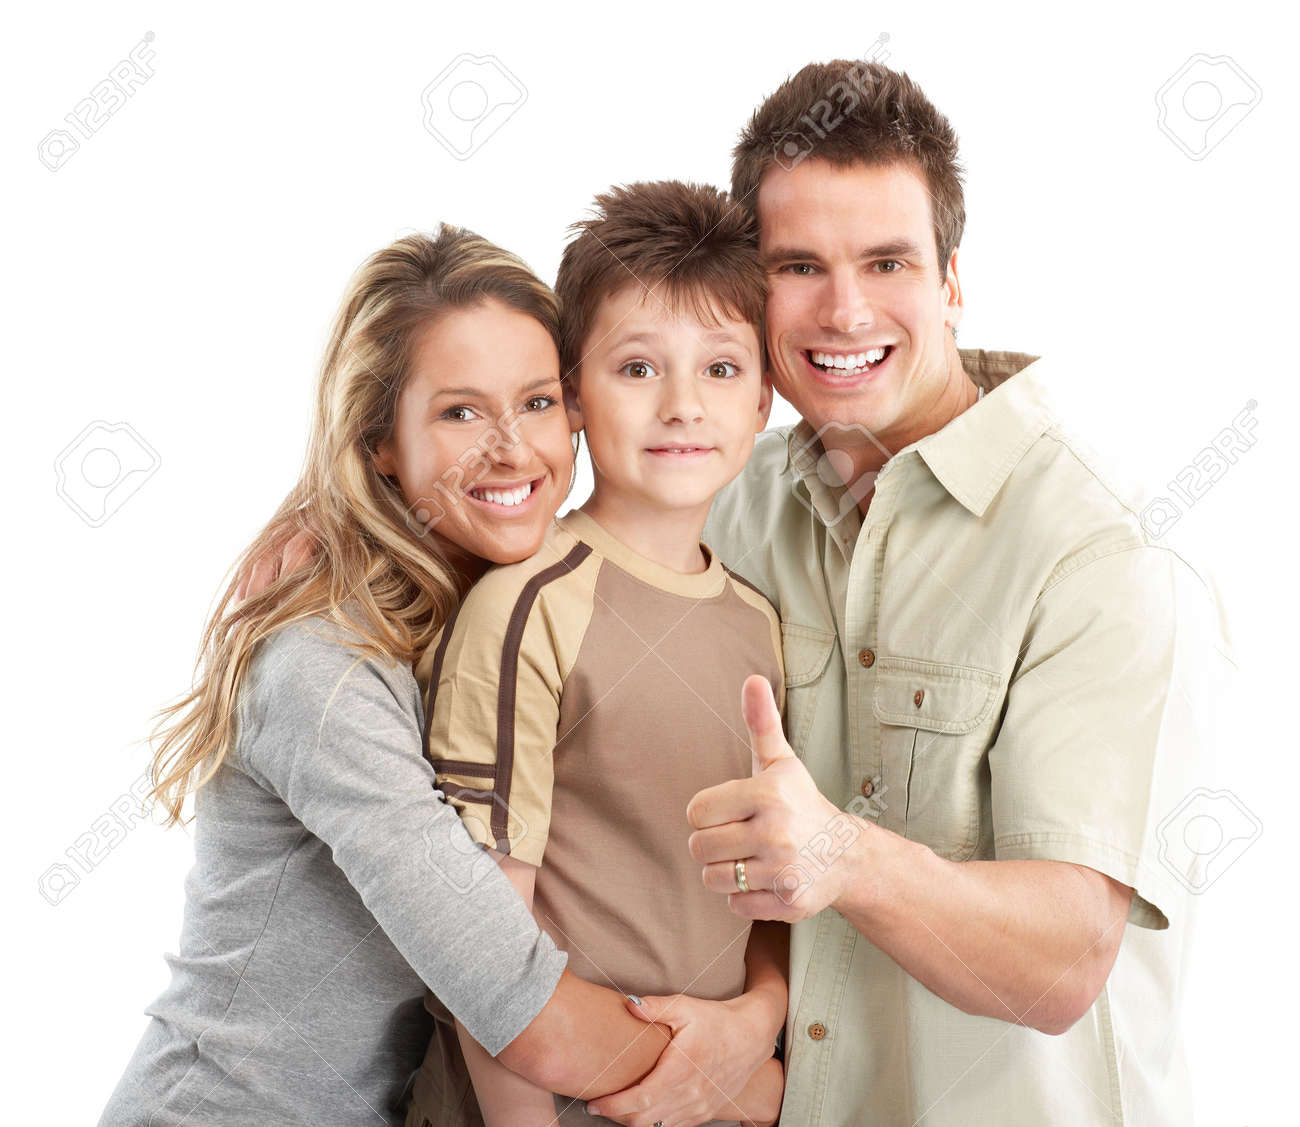 Happy family. Father, mother and boy. Over white background Stock Photo - 5771271